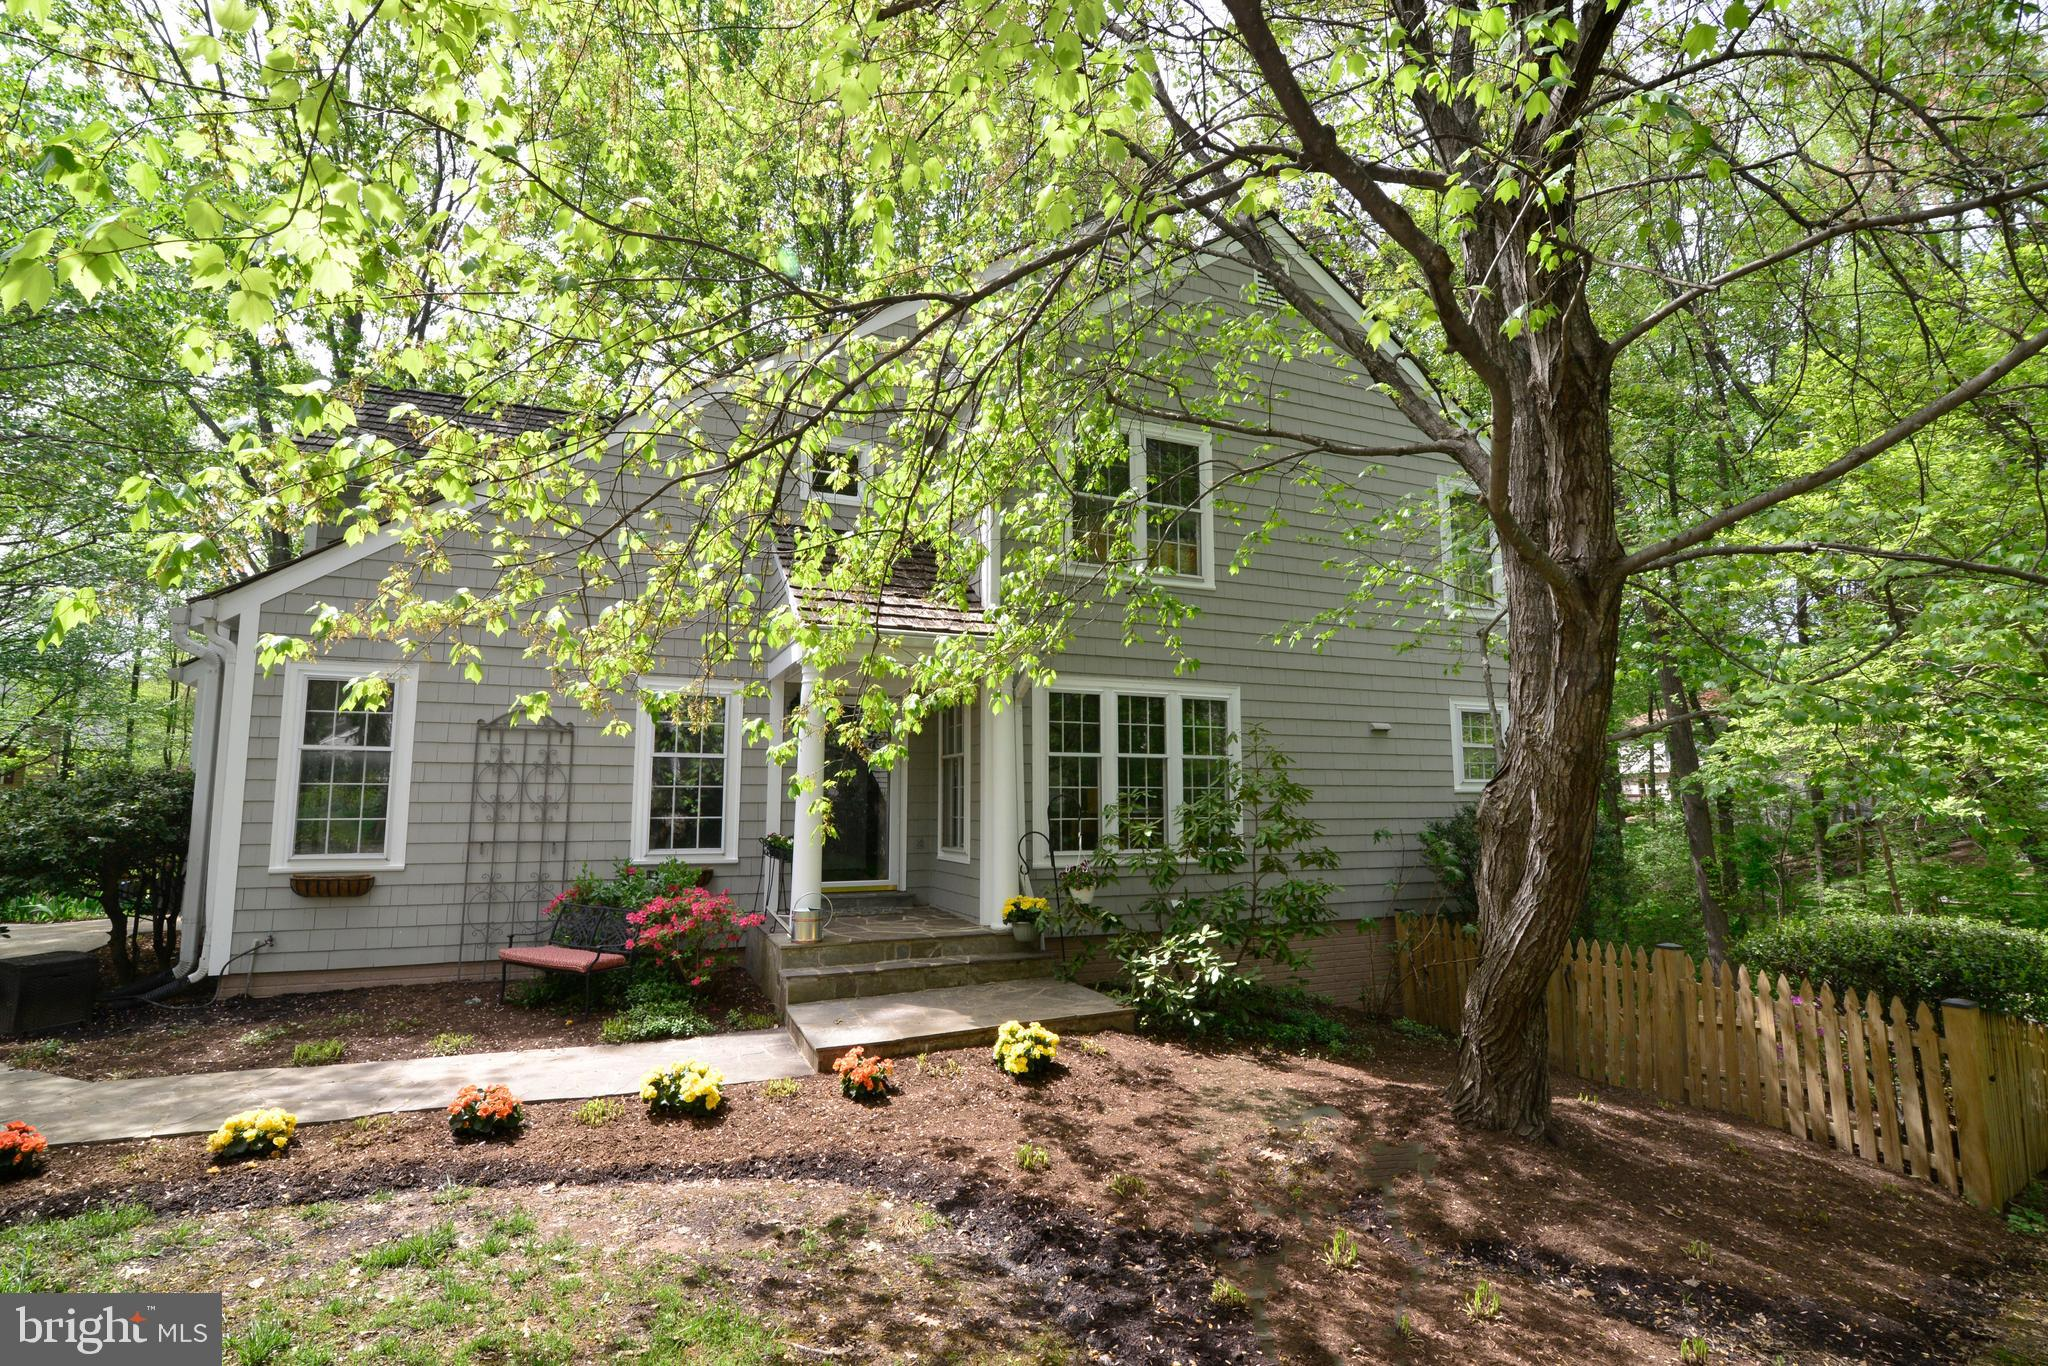 Absolutely Charming, Updated, 4 Bedrooms, 3.5 Baths and Located in an Adorable Cluster of Homes in the Heart of North Reston. Year Round Privacy Abounds at the End of the Cul-de-Sac While Backing to Lush Woods with Paved Walking Trails. Walls of Windows, Soaring Ceilings and Skylights Enhance the Open Floor Plan. The Main Level Comprises Gleaming Hardwoods, Spacious Living Room, Cozy Family Room with Wood Burning Fireplace and Access to Peaceful Deck. Remodeled Kitchen Comprises Custom Cabinetry, Glass Tiled Backsplash, Under Cabinet Lighting, Granite, Stainless Steel Appliances. The Upper Level Master Bedroom Suite Has Two Closets and Spa-Like Bath. Two Additional Bedrooms, Full Bath, Rarely Available Upper Laundry, and Dramatic 2-Story Overlook Round Out the Upper Level. The Walk-Out Lower Level with New Flooring Boasts Family Room with French Doors to Expansive Lower Deck, Legal 4th Bedroom with Sunny Window, Full Bath, Bonus Room.  Professionally Landscaped with Gorgeous Blooming Plants. All This and Located Just One Block from Reston's North Point Center with Shopping, Restaurants, Entertainment. Walk to Pools, Tennis, Reston's Trails. Commuters Dream Location! Just One Mile to Reston Town Center, and Minutes to Metro, Route 7, Toll Road, Greenway. Updates Include:  2004 New Roof, 2005 New Furnace, 2015 Fully Remodeled Kitchen with New Appliances, Remodeled Lower Level, 2016 New HVAC, Water Heater, Skylights, 2019 Refinished Hardwoods, New Carpet, New Fixtures, Whole House Painted, Newly Improved Bathrooms~